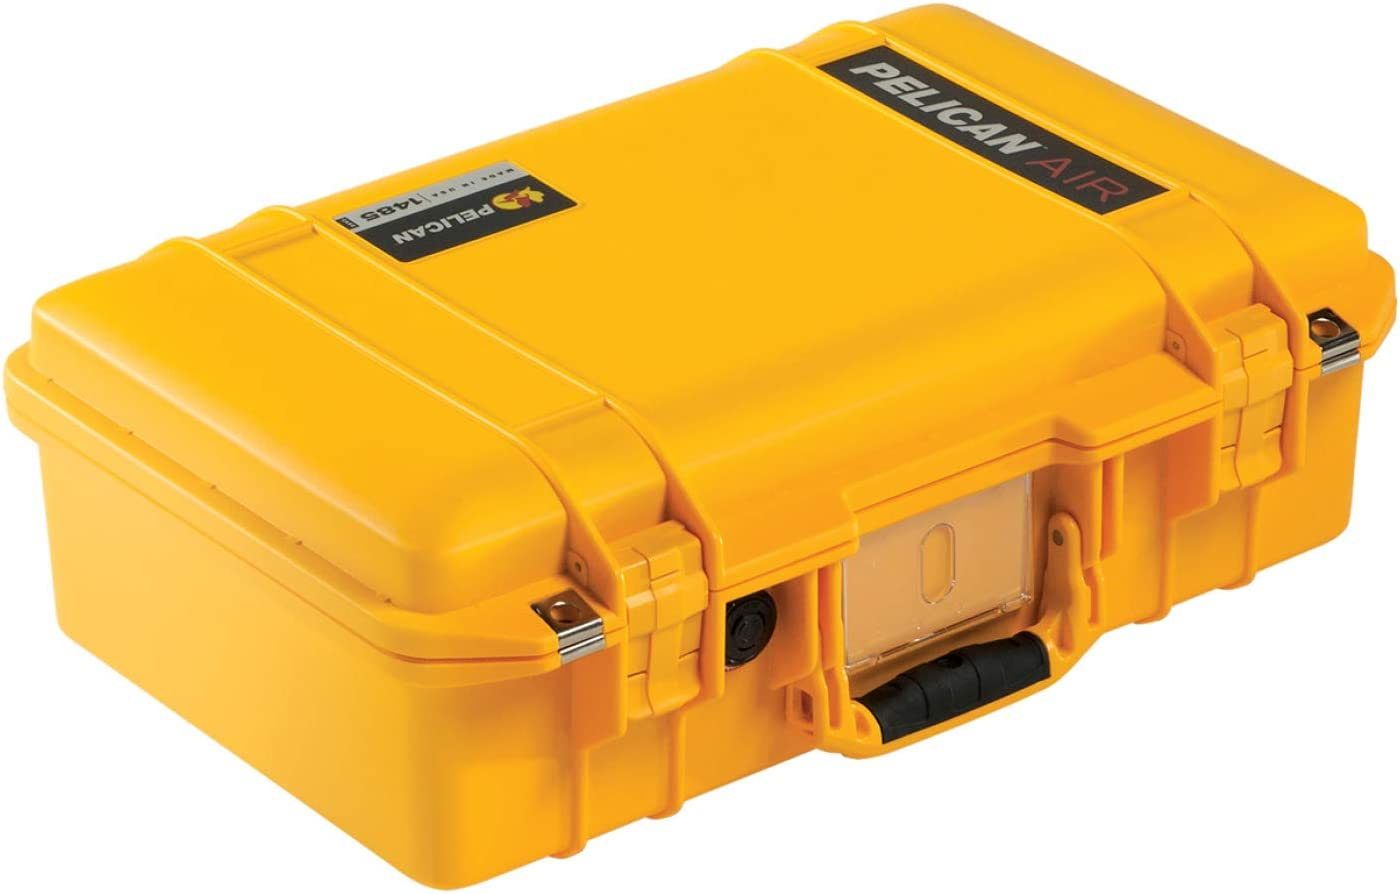 Pelican Air 1485 Case with Foam (Yellow)